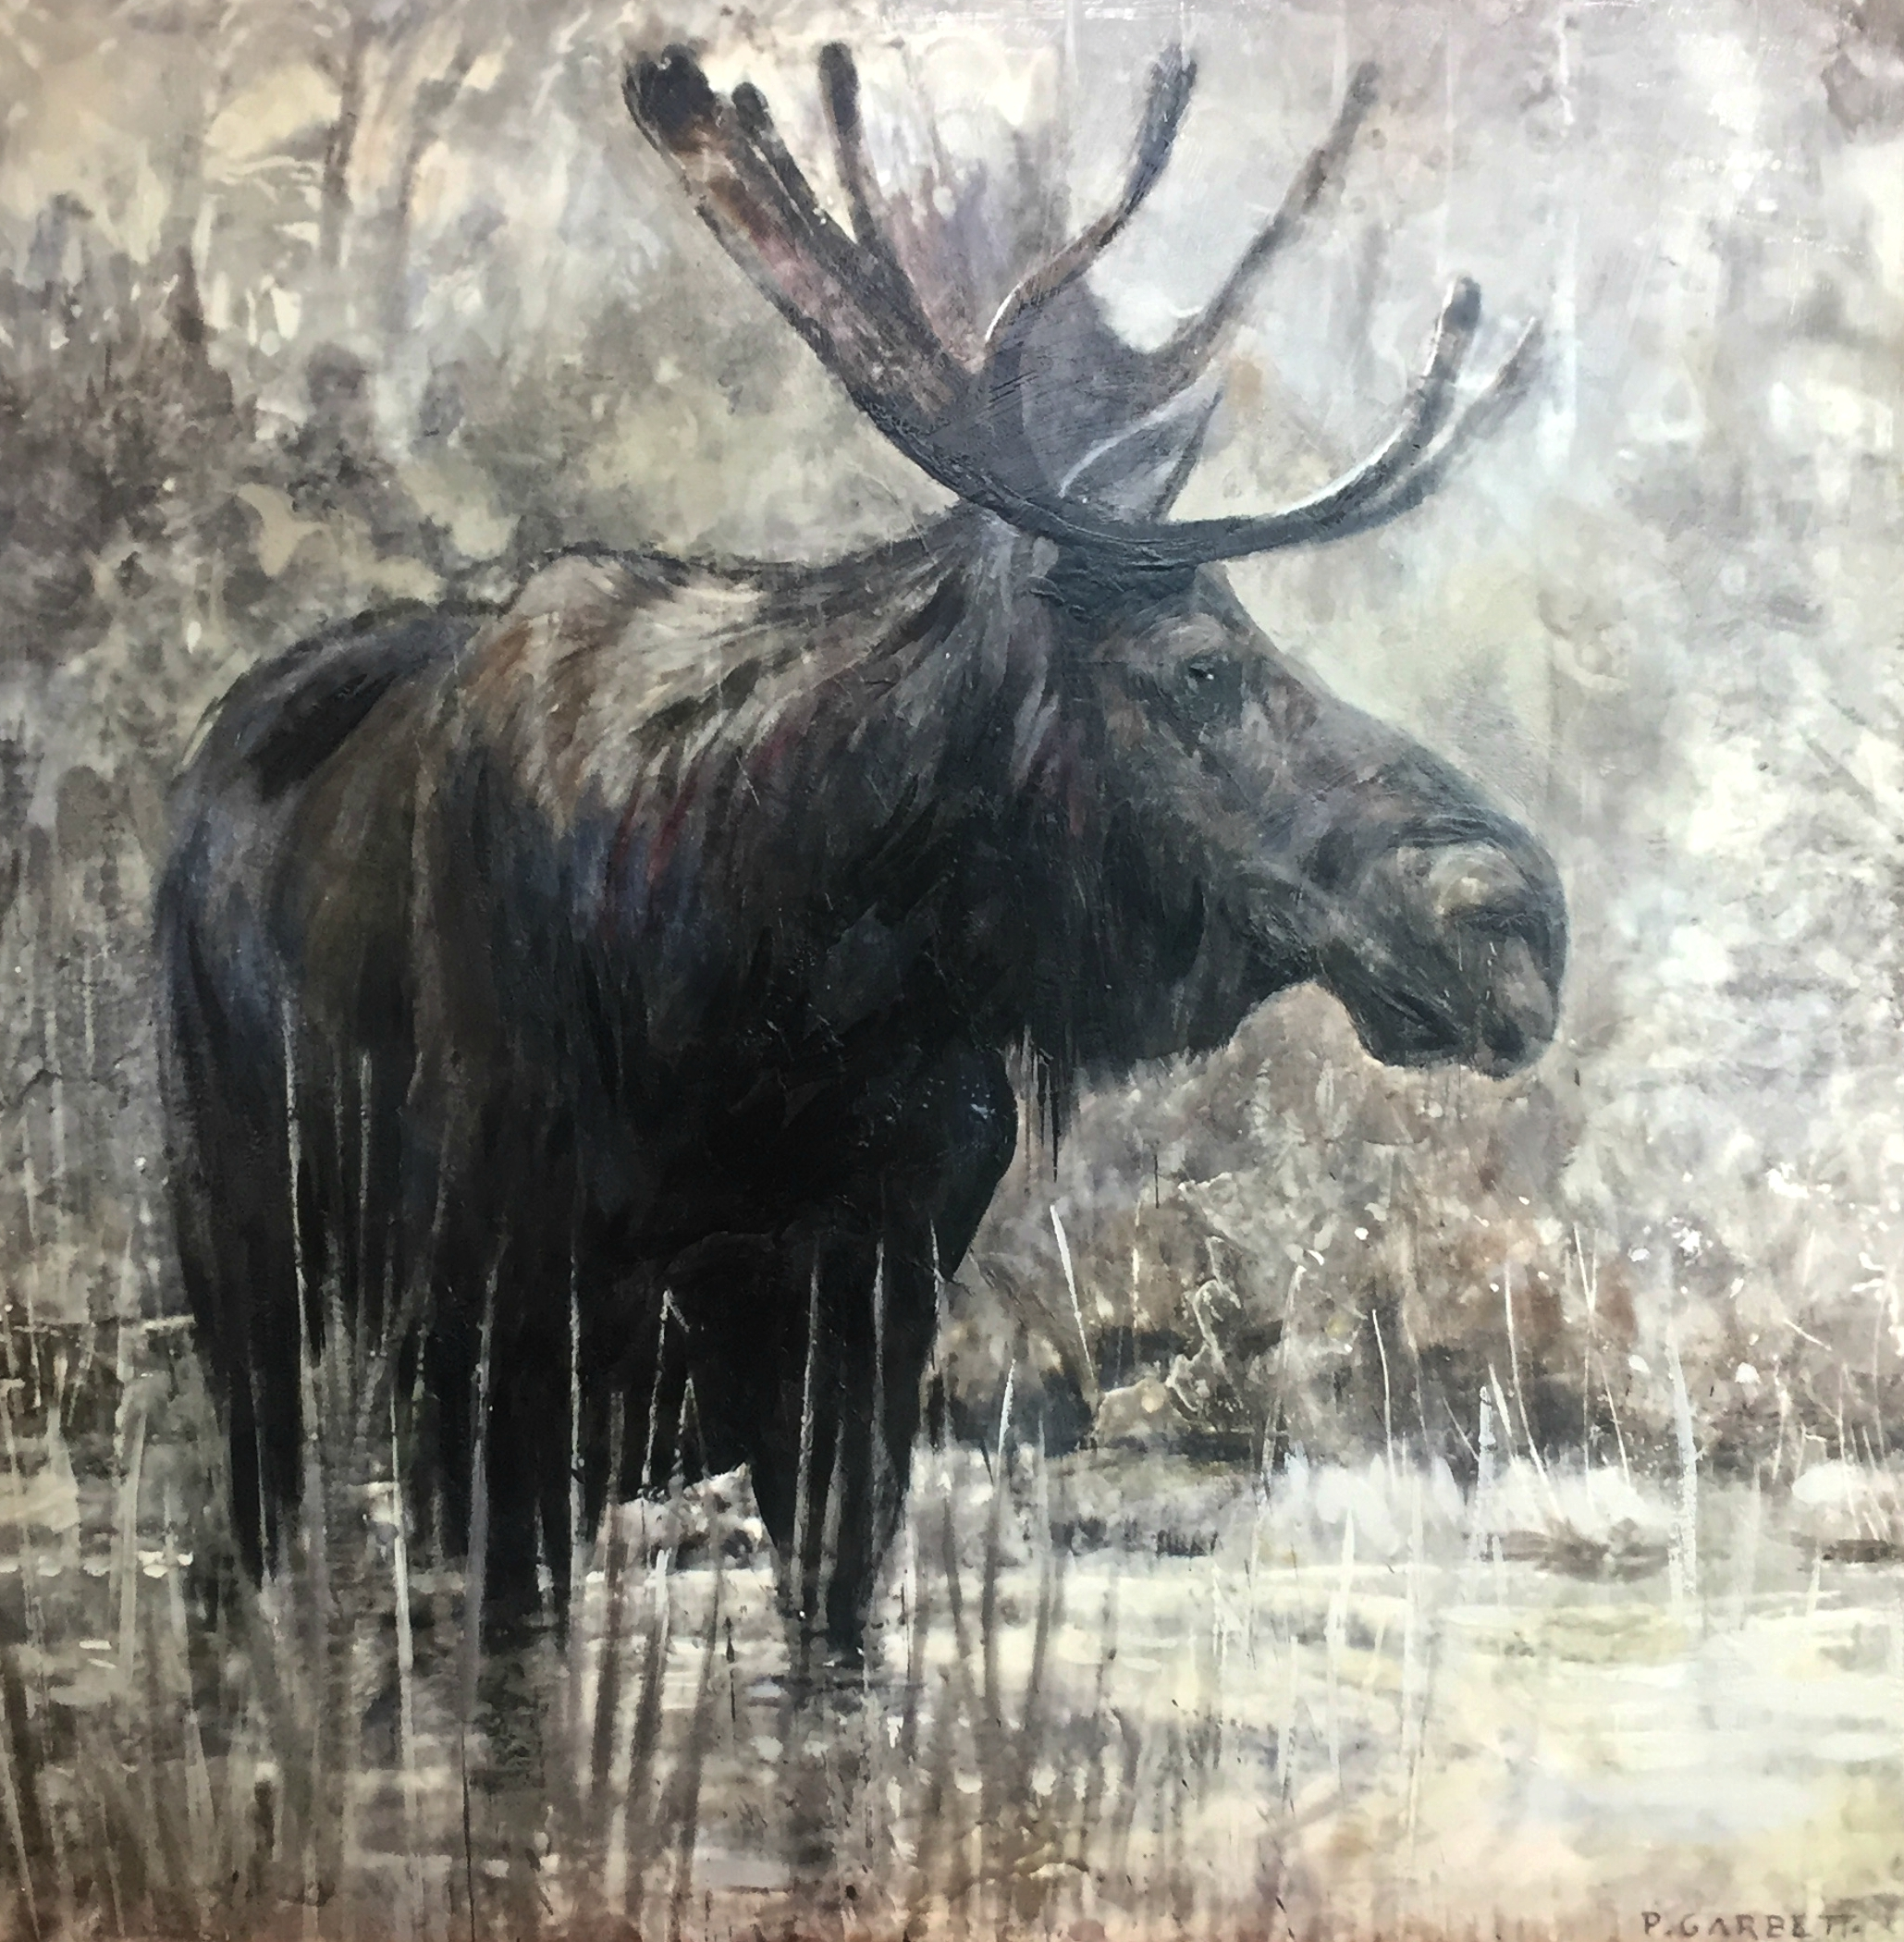 Moose, limited edition encaustic print by Paul Garbett | Effusion Art Gallery + Cast Glass Studio, Invermere BC